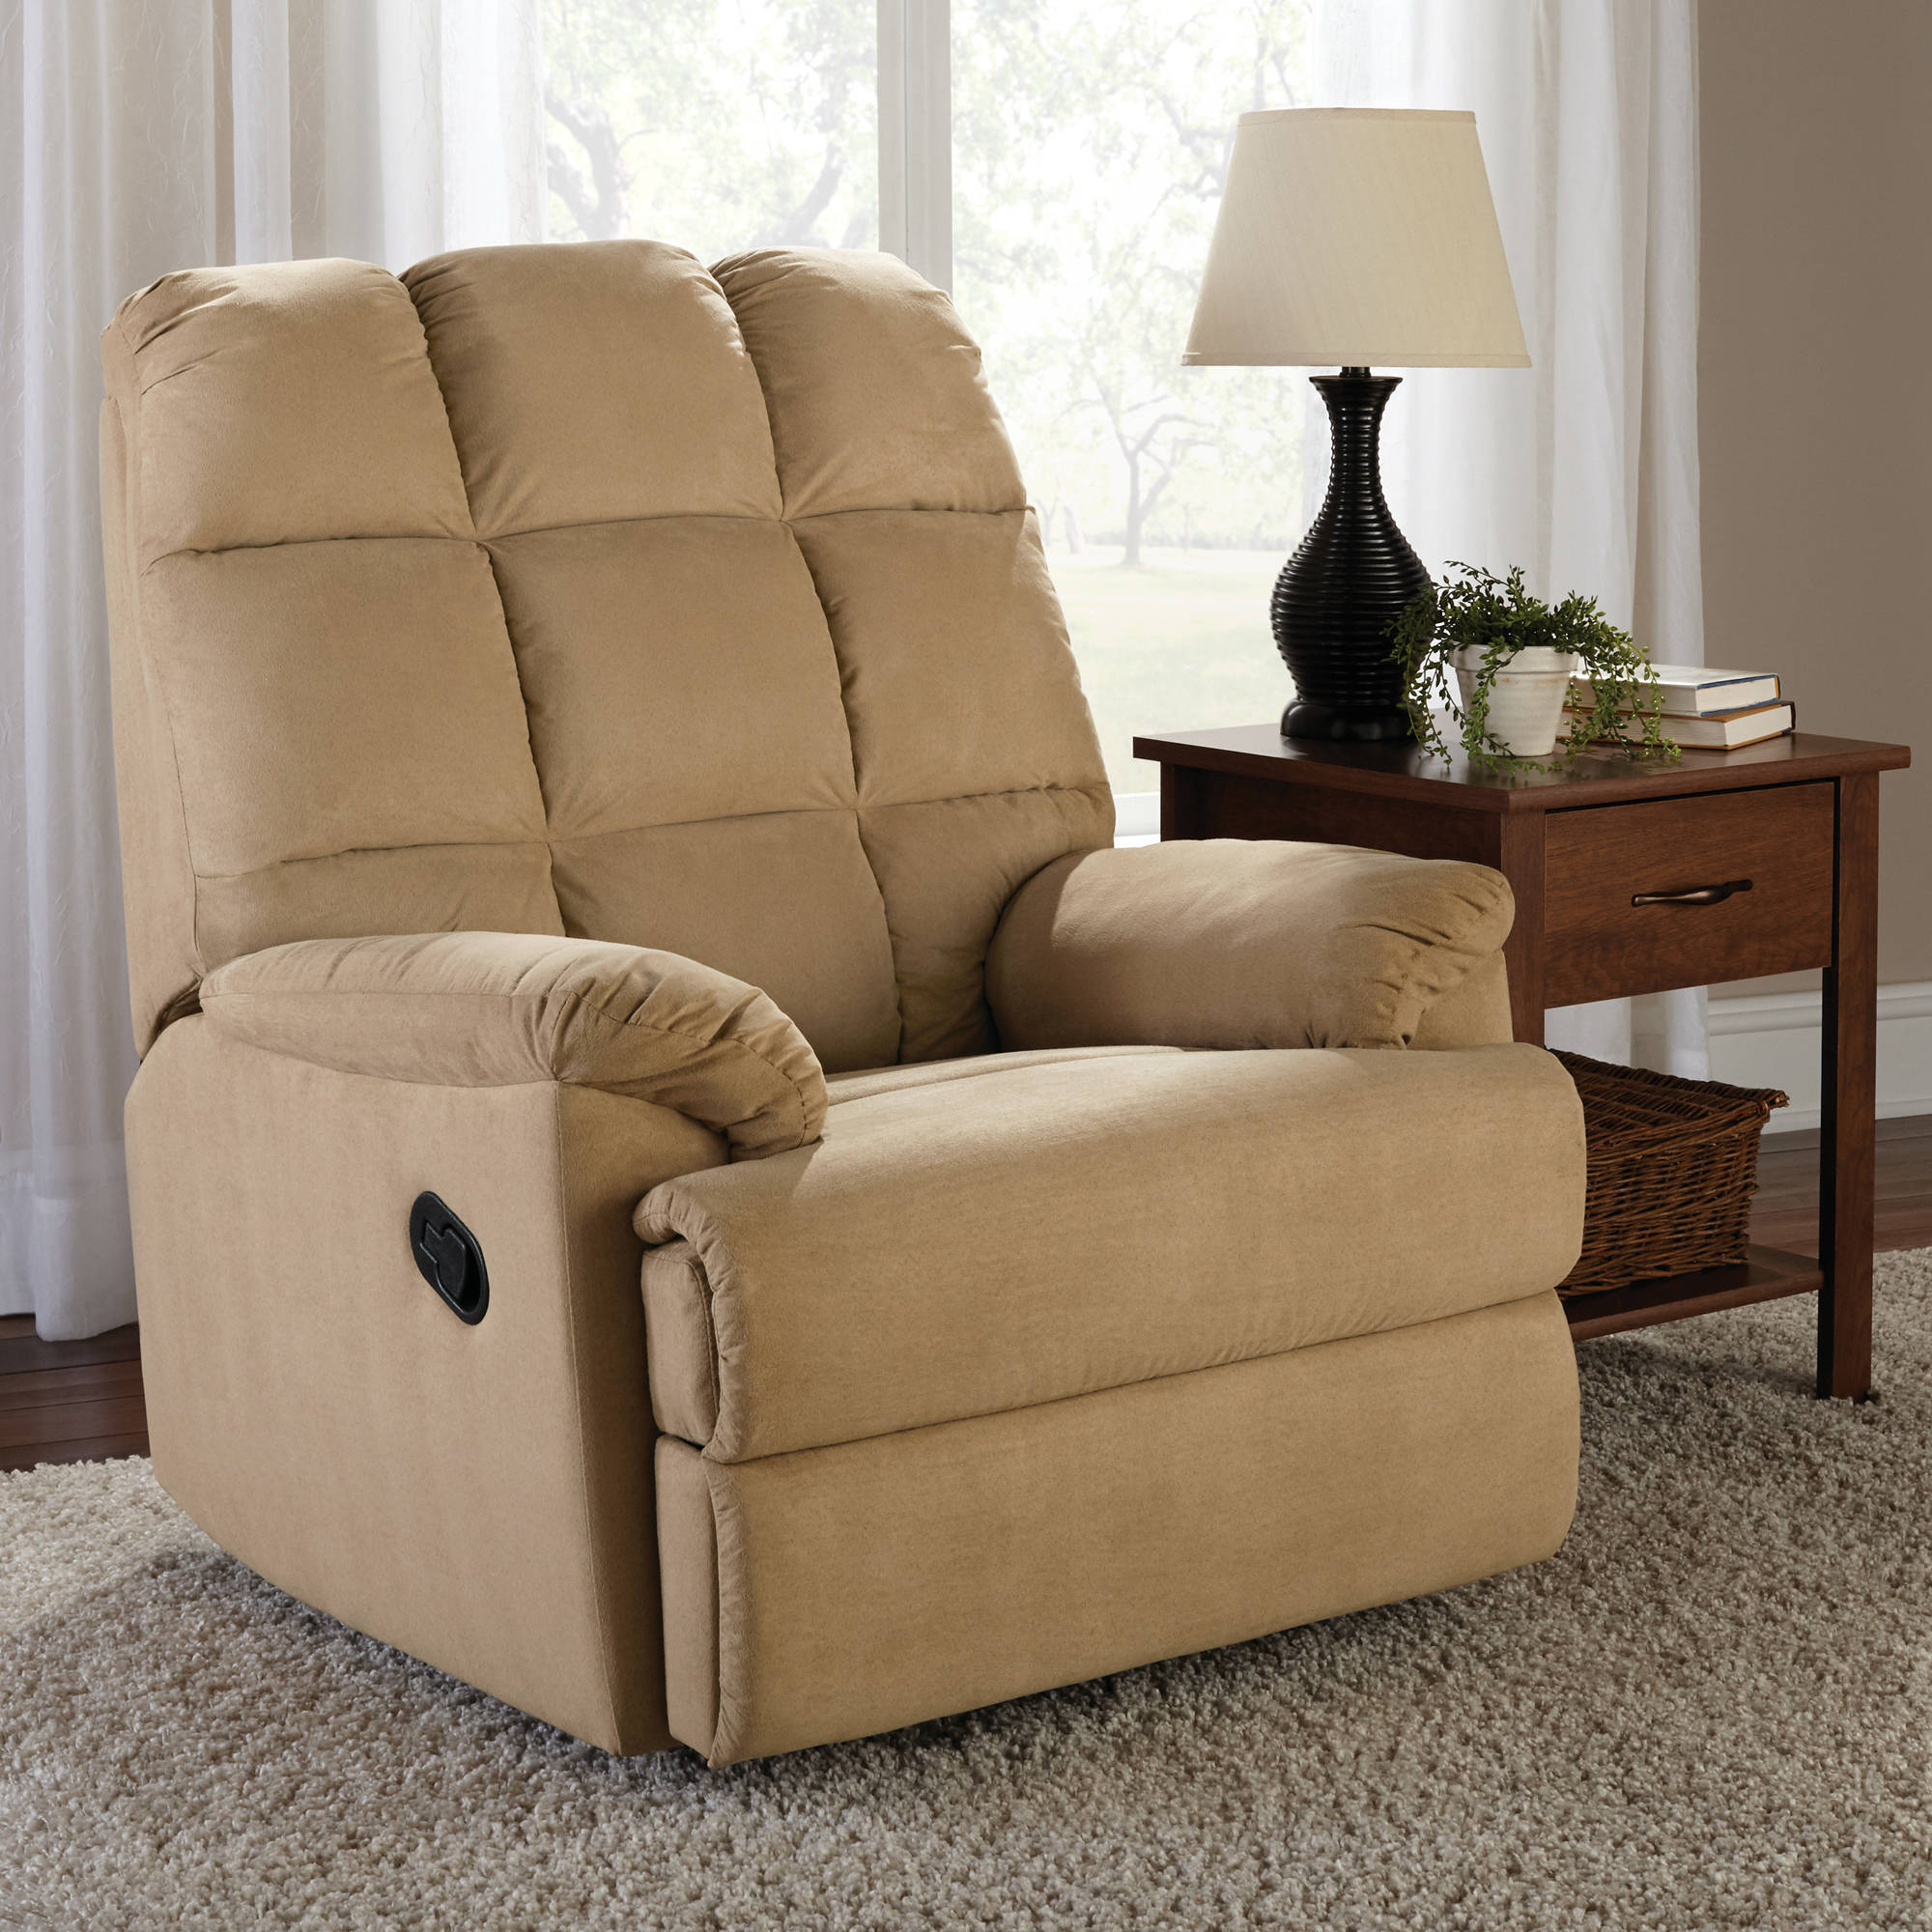 under rocker black swivel sale chairs your full terrific ideas entrin furniture for small info s recliner